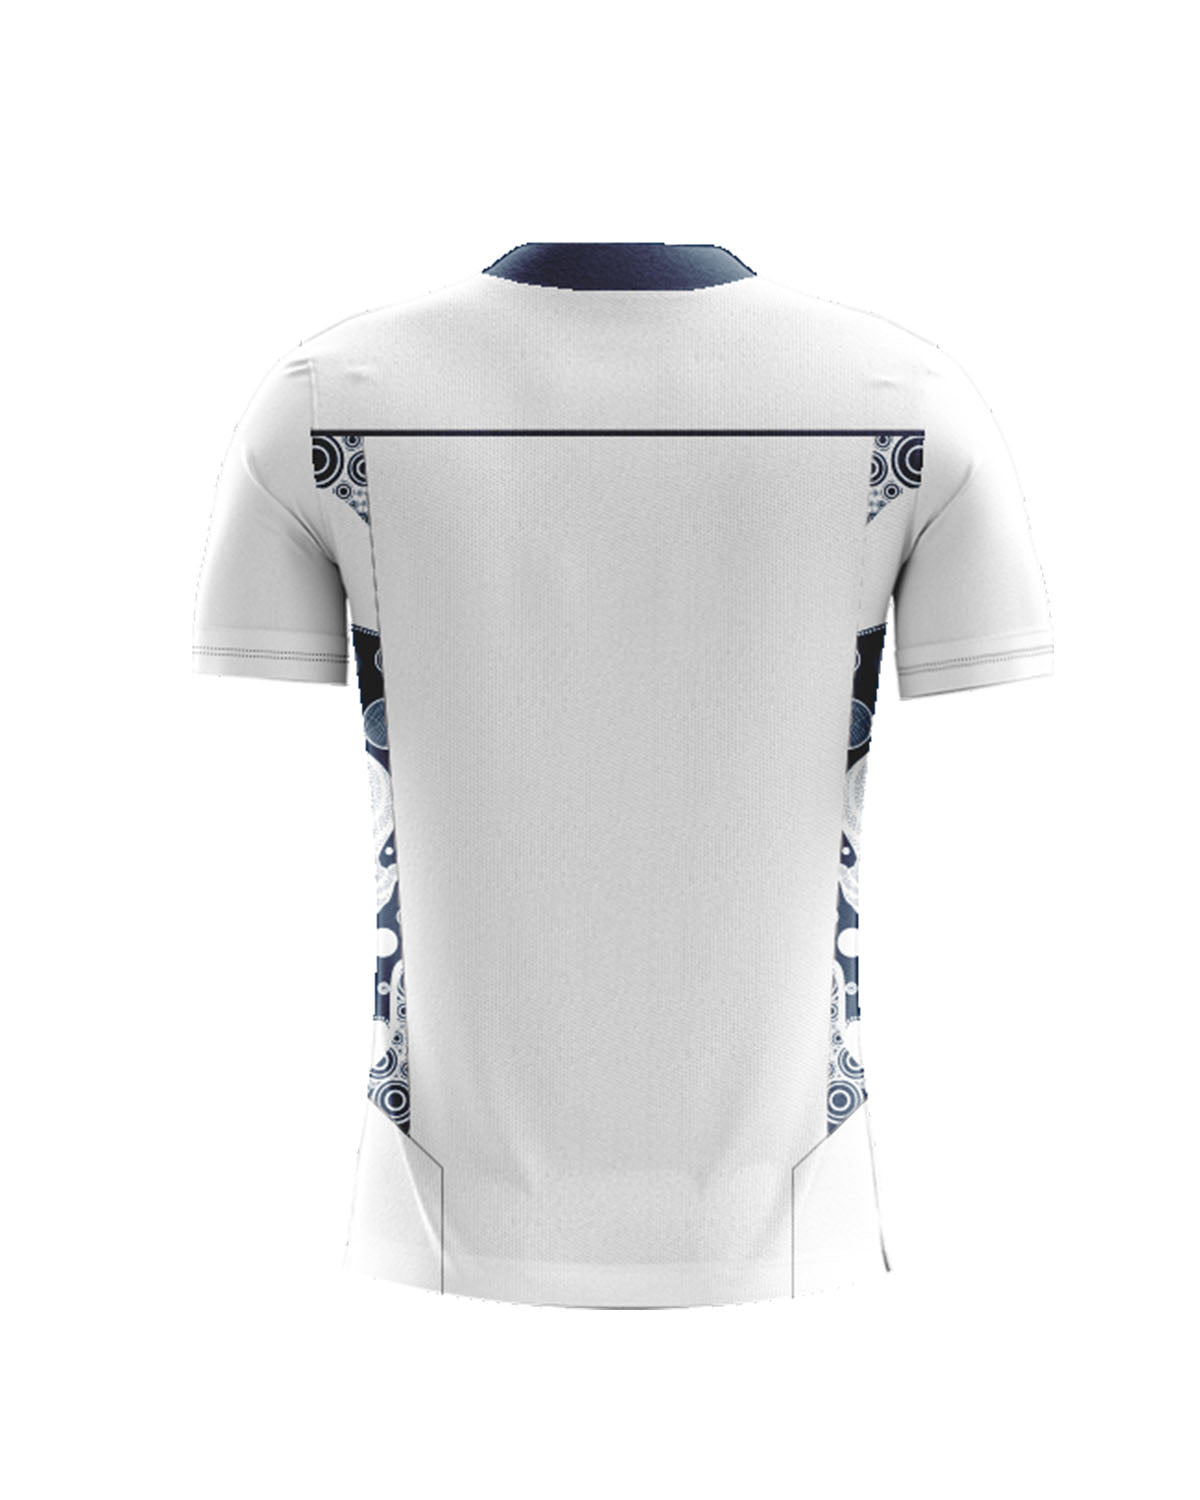 OMBAC Wallabies Polo Shirt White Mens